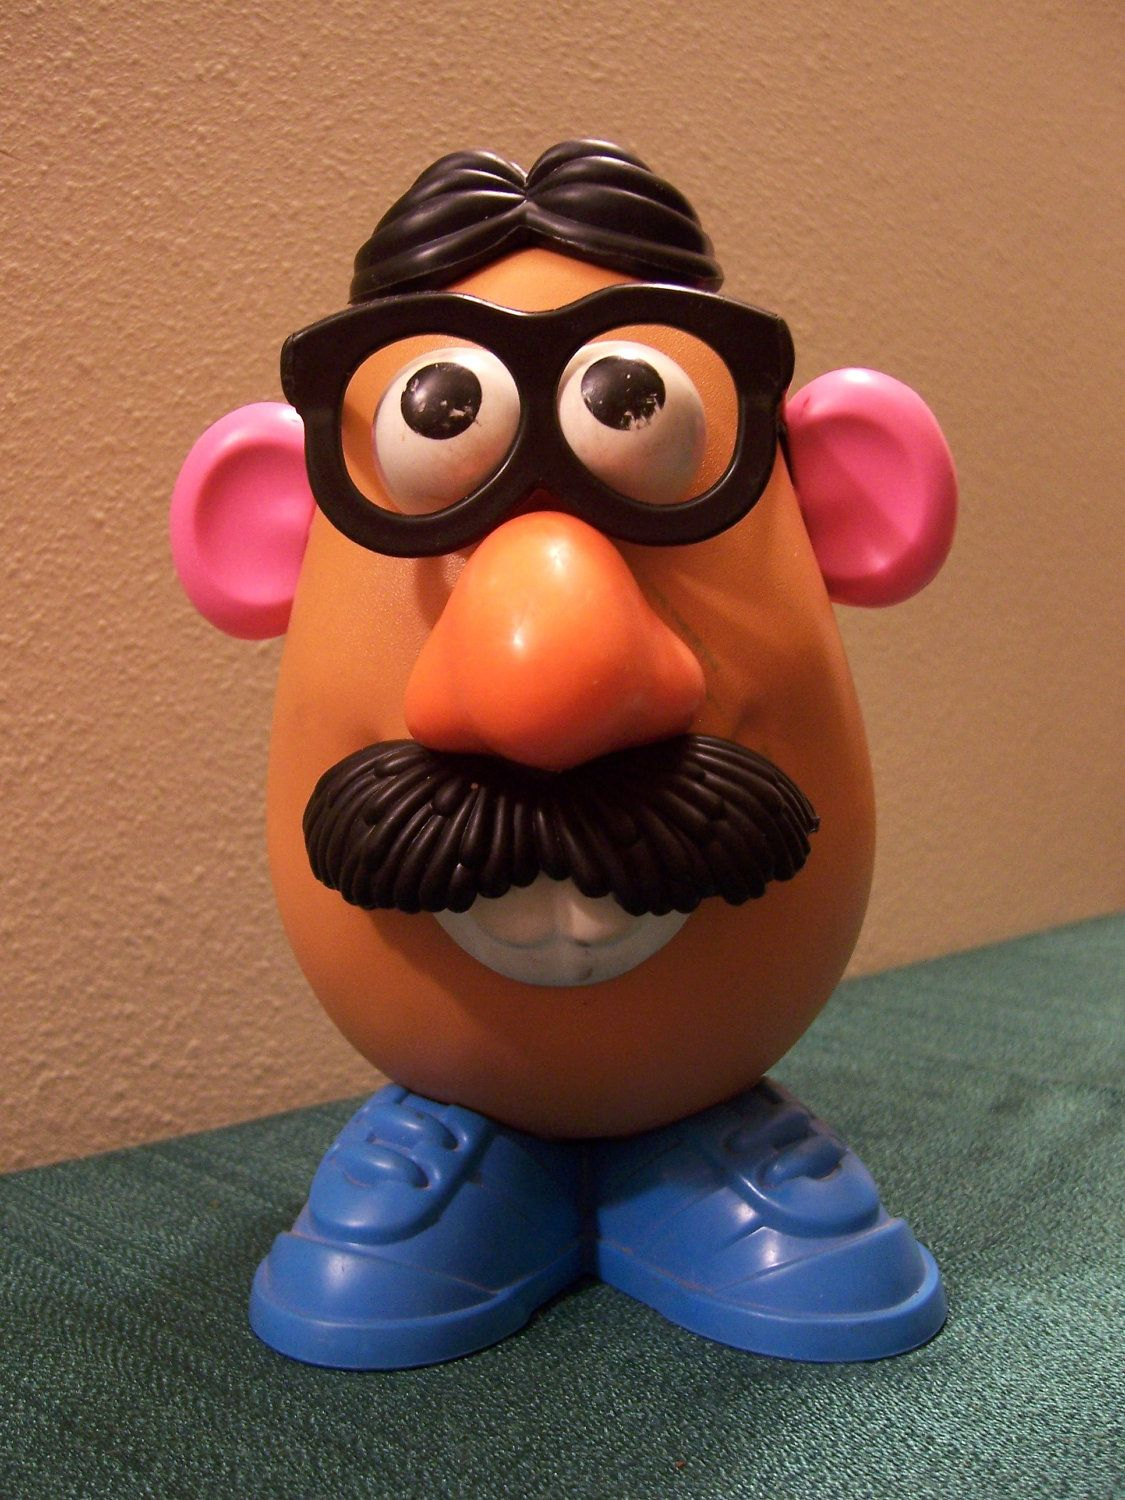 1985 vintage mr potato head back in the day childhood toys antique toys childhood memories